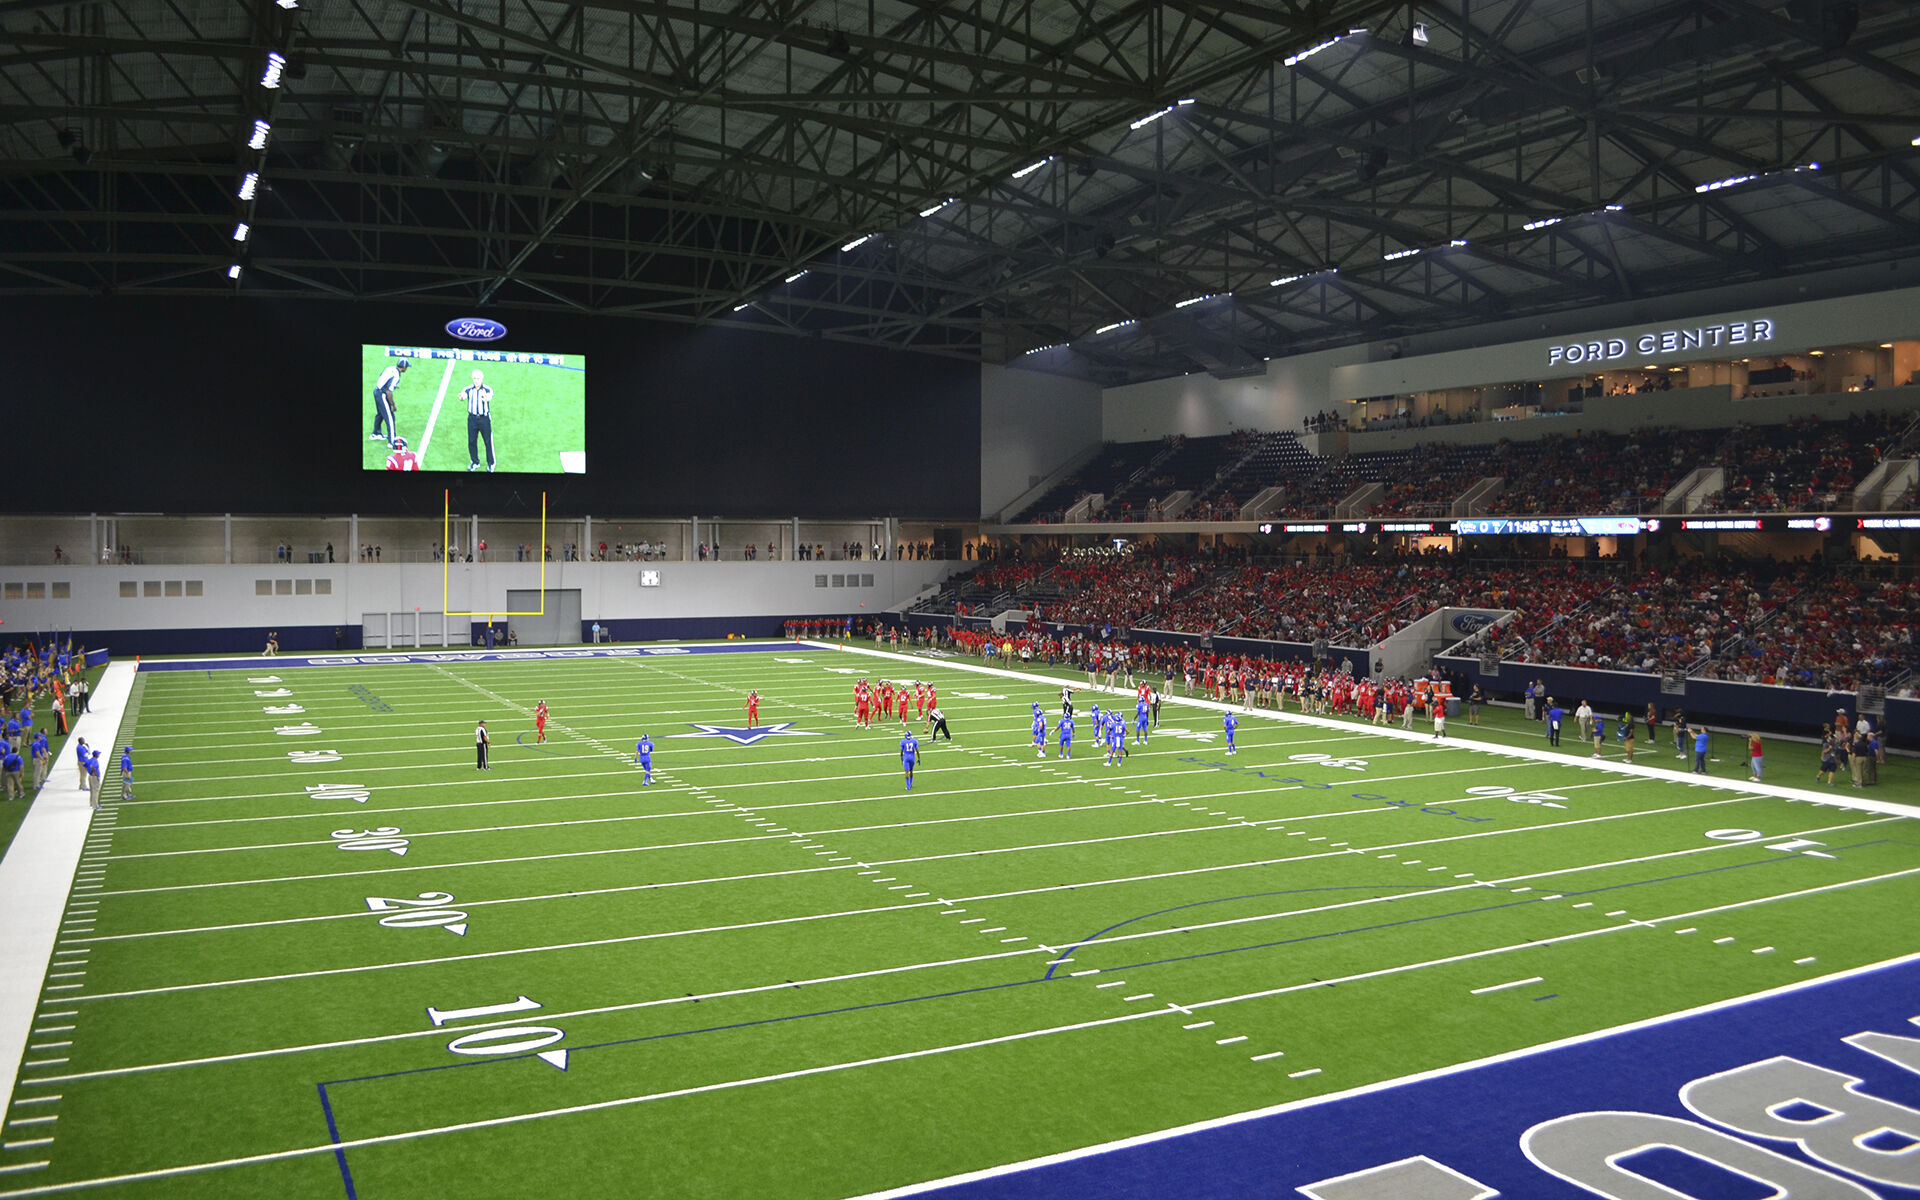 One Cowboys Way - The Star in Frisco